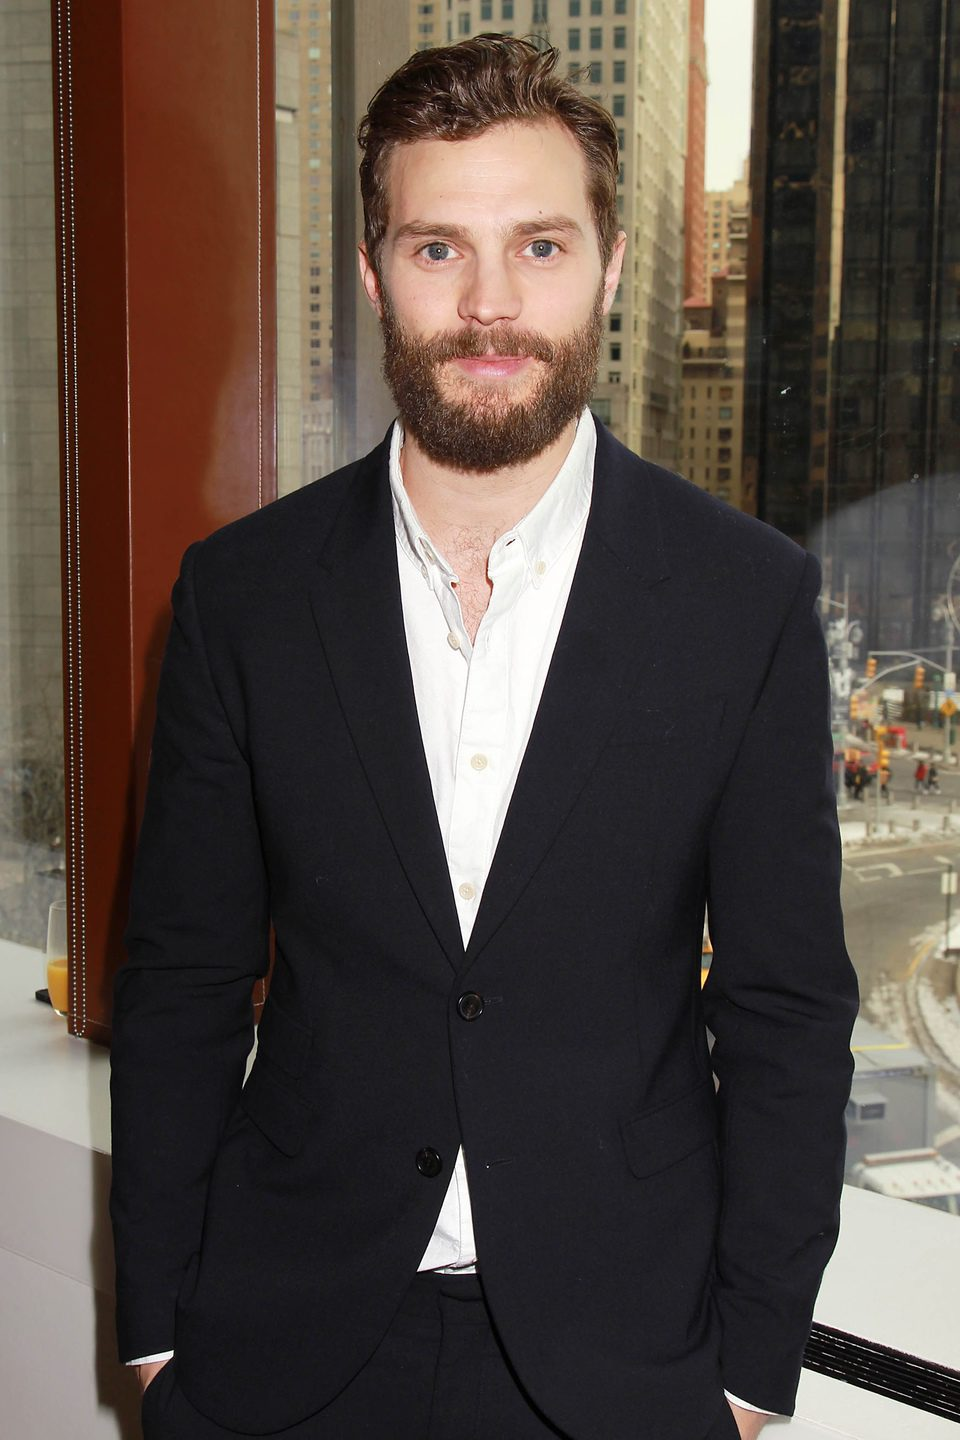 Jamie Dornan at the 'Fifty Shades of Grey' New York fan event